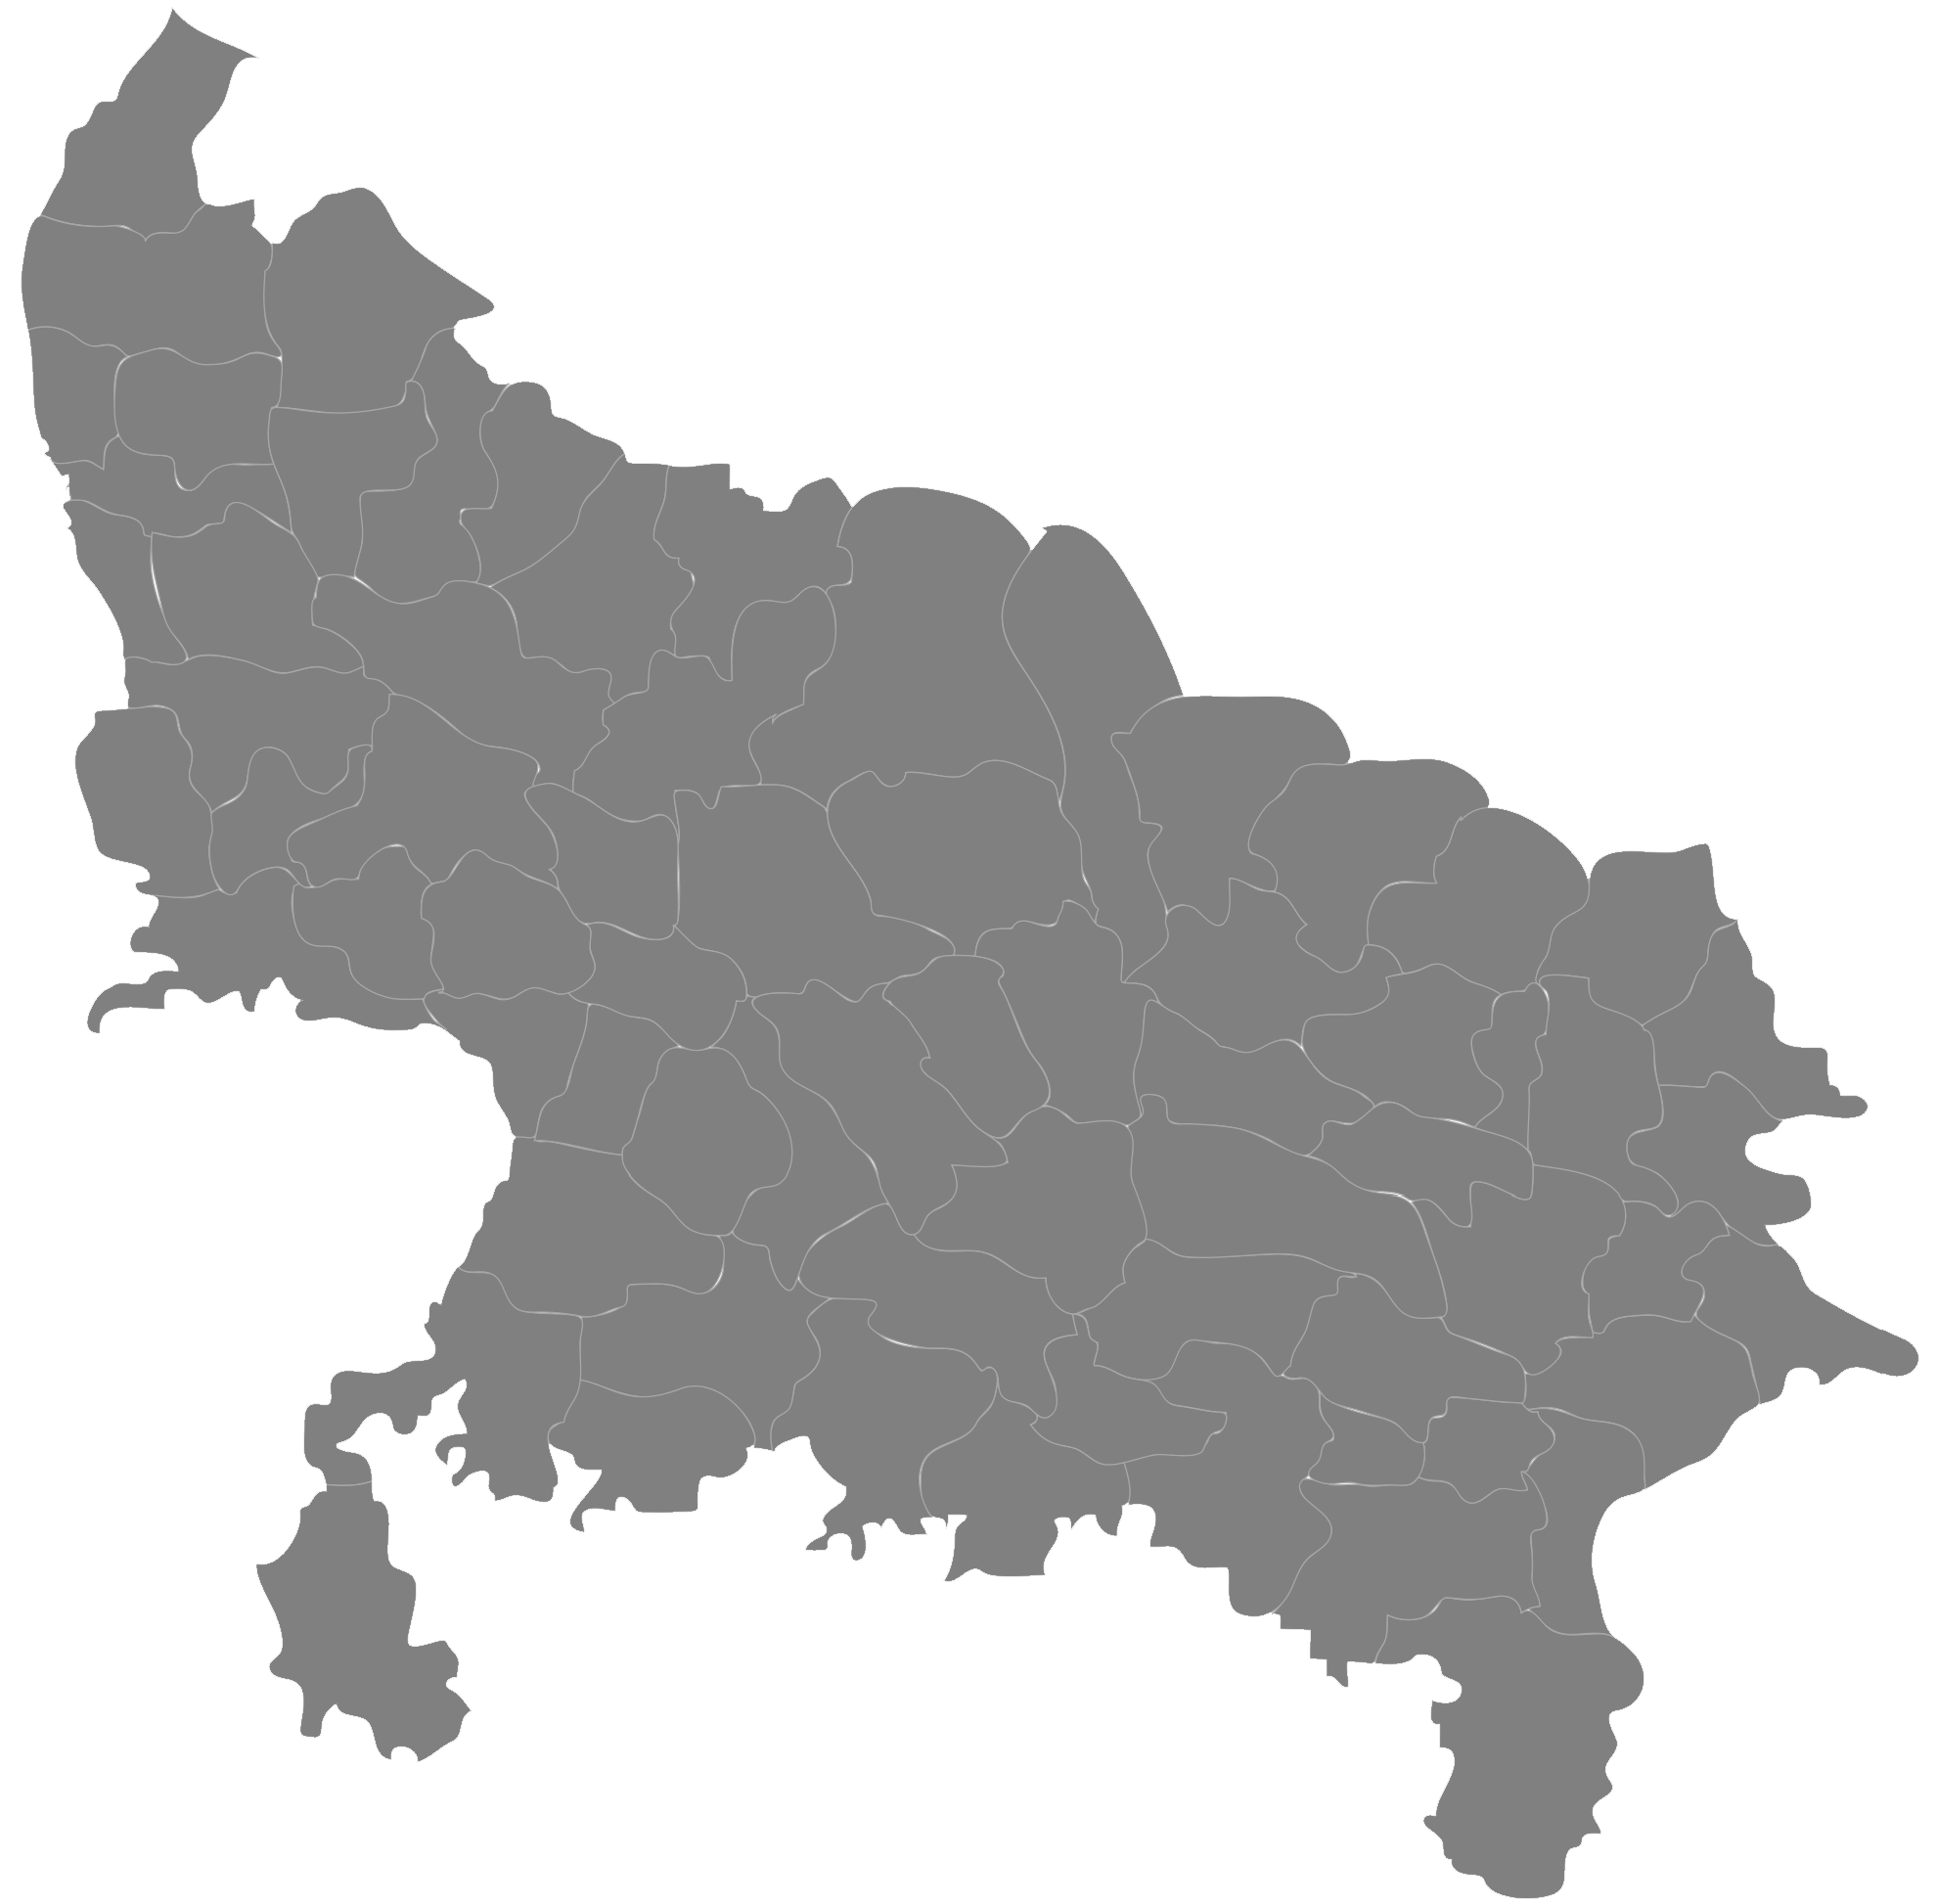 Districts Blank Map of Uttar Pradesh • Mapsof net